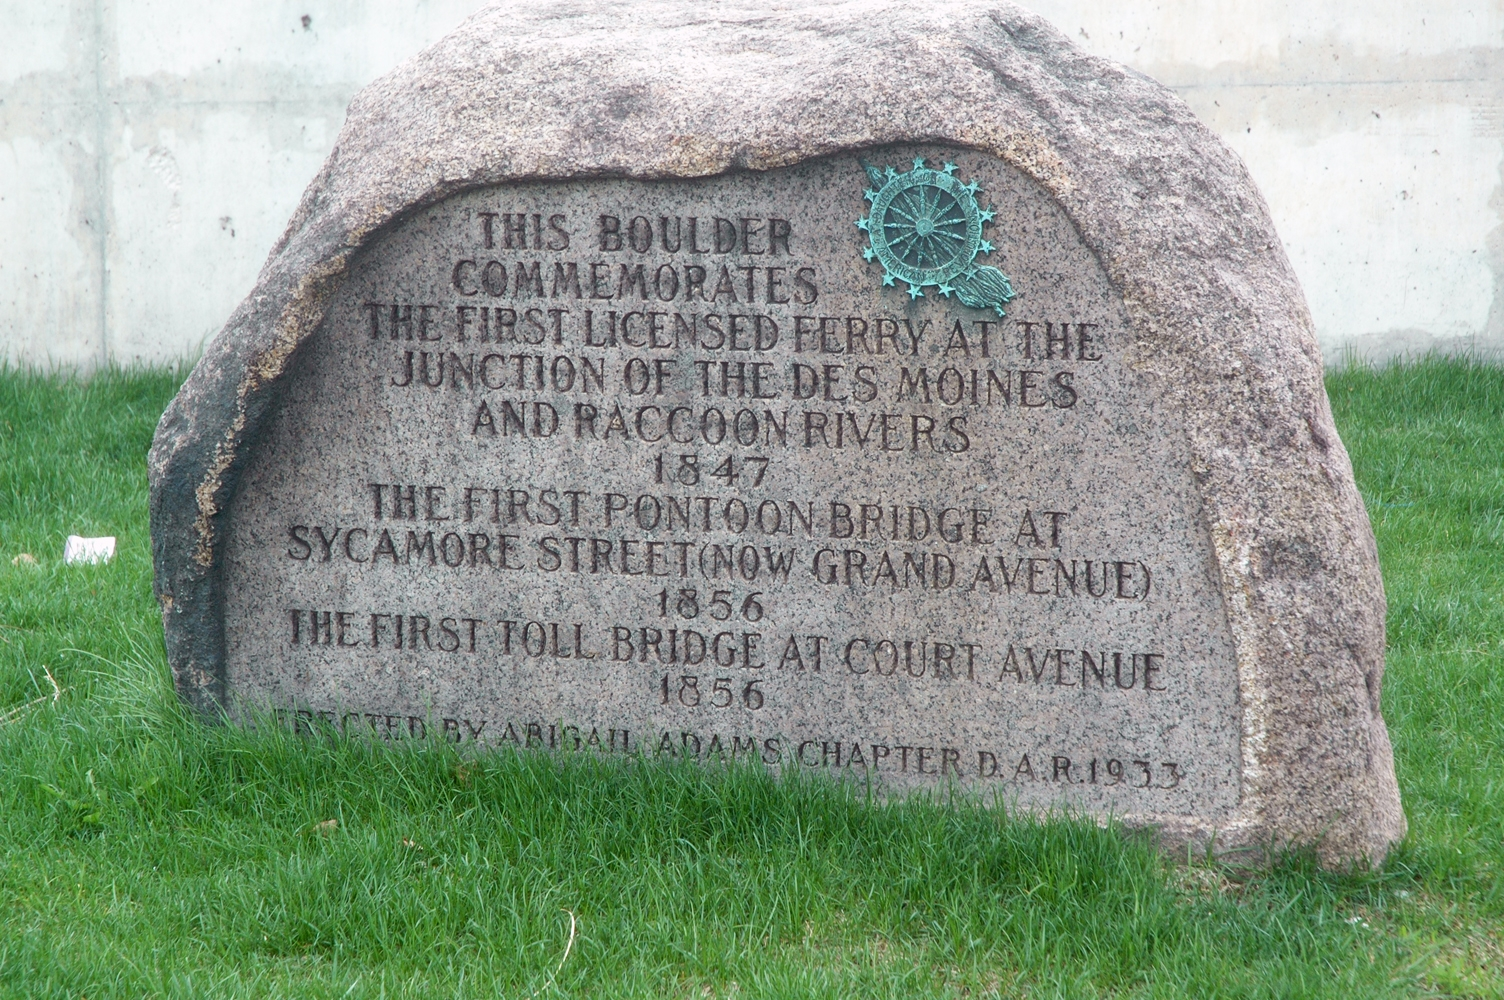 The marker is located next to the Des Moines River adjacent to Grand Avenue.